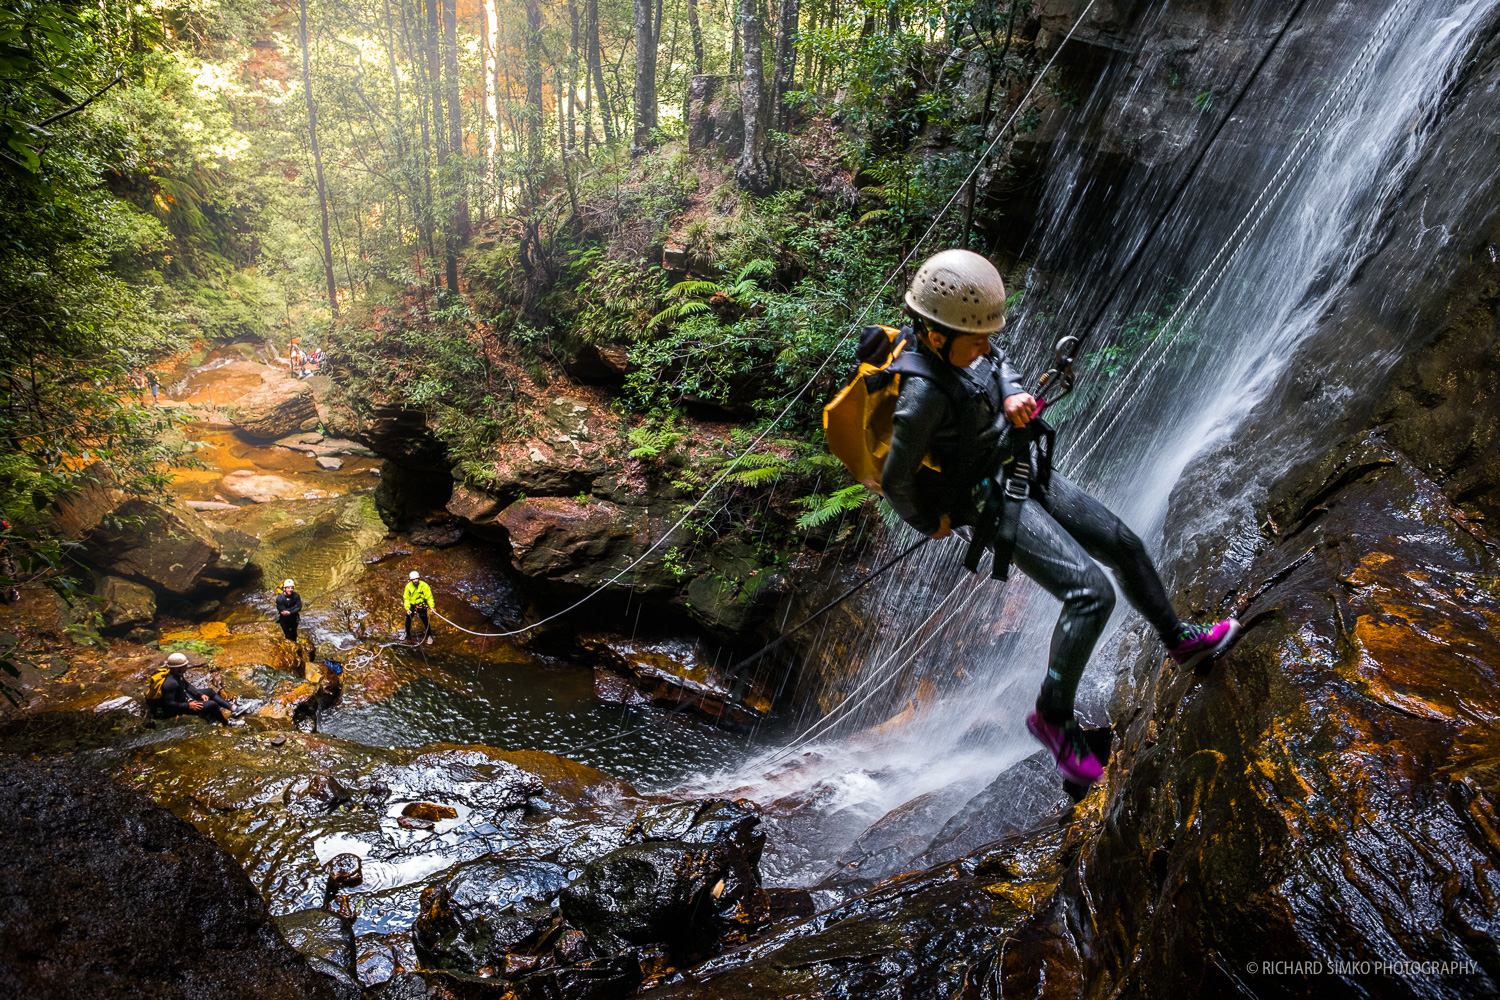 Canyoning at Wentworth Falls track. It's slippery and wet experience.